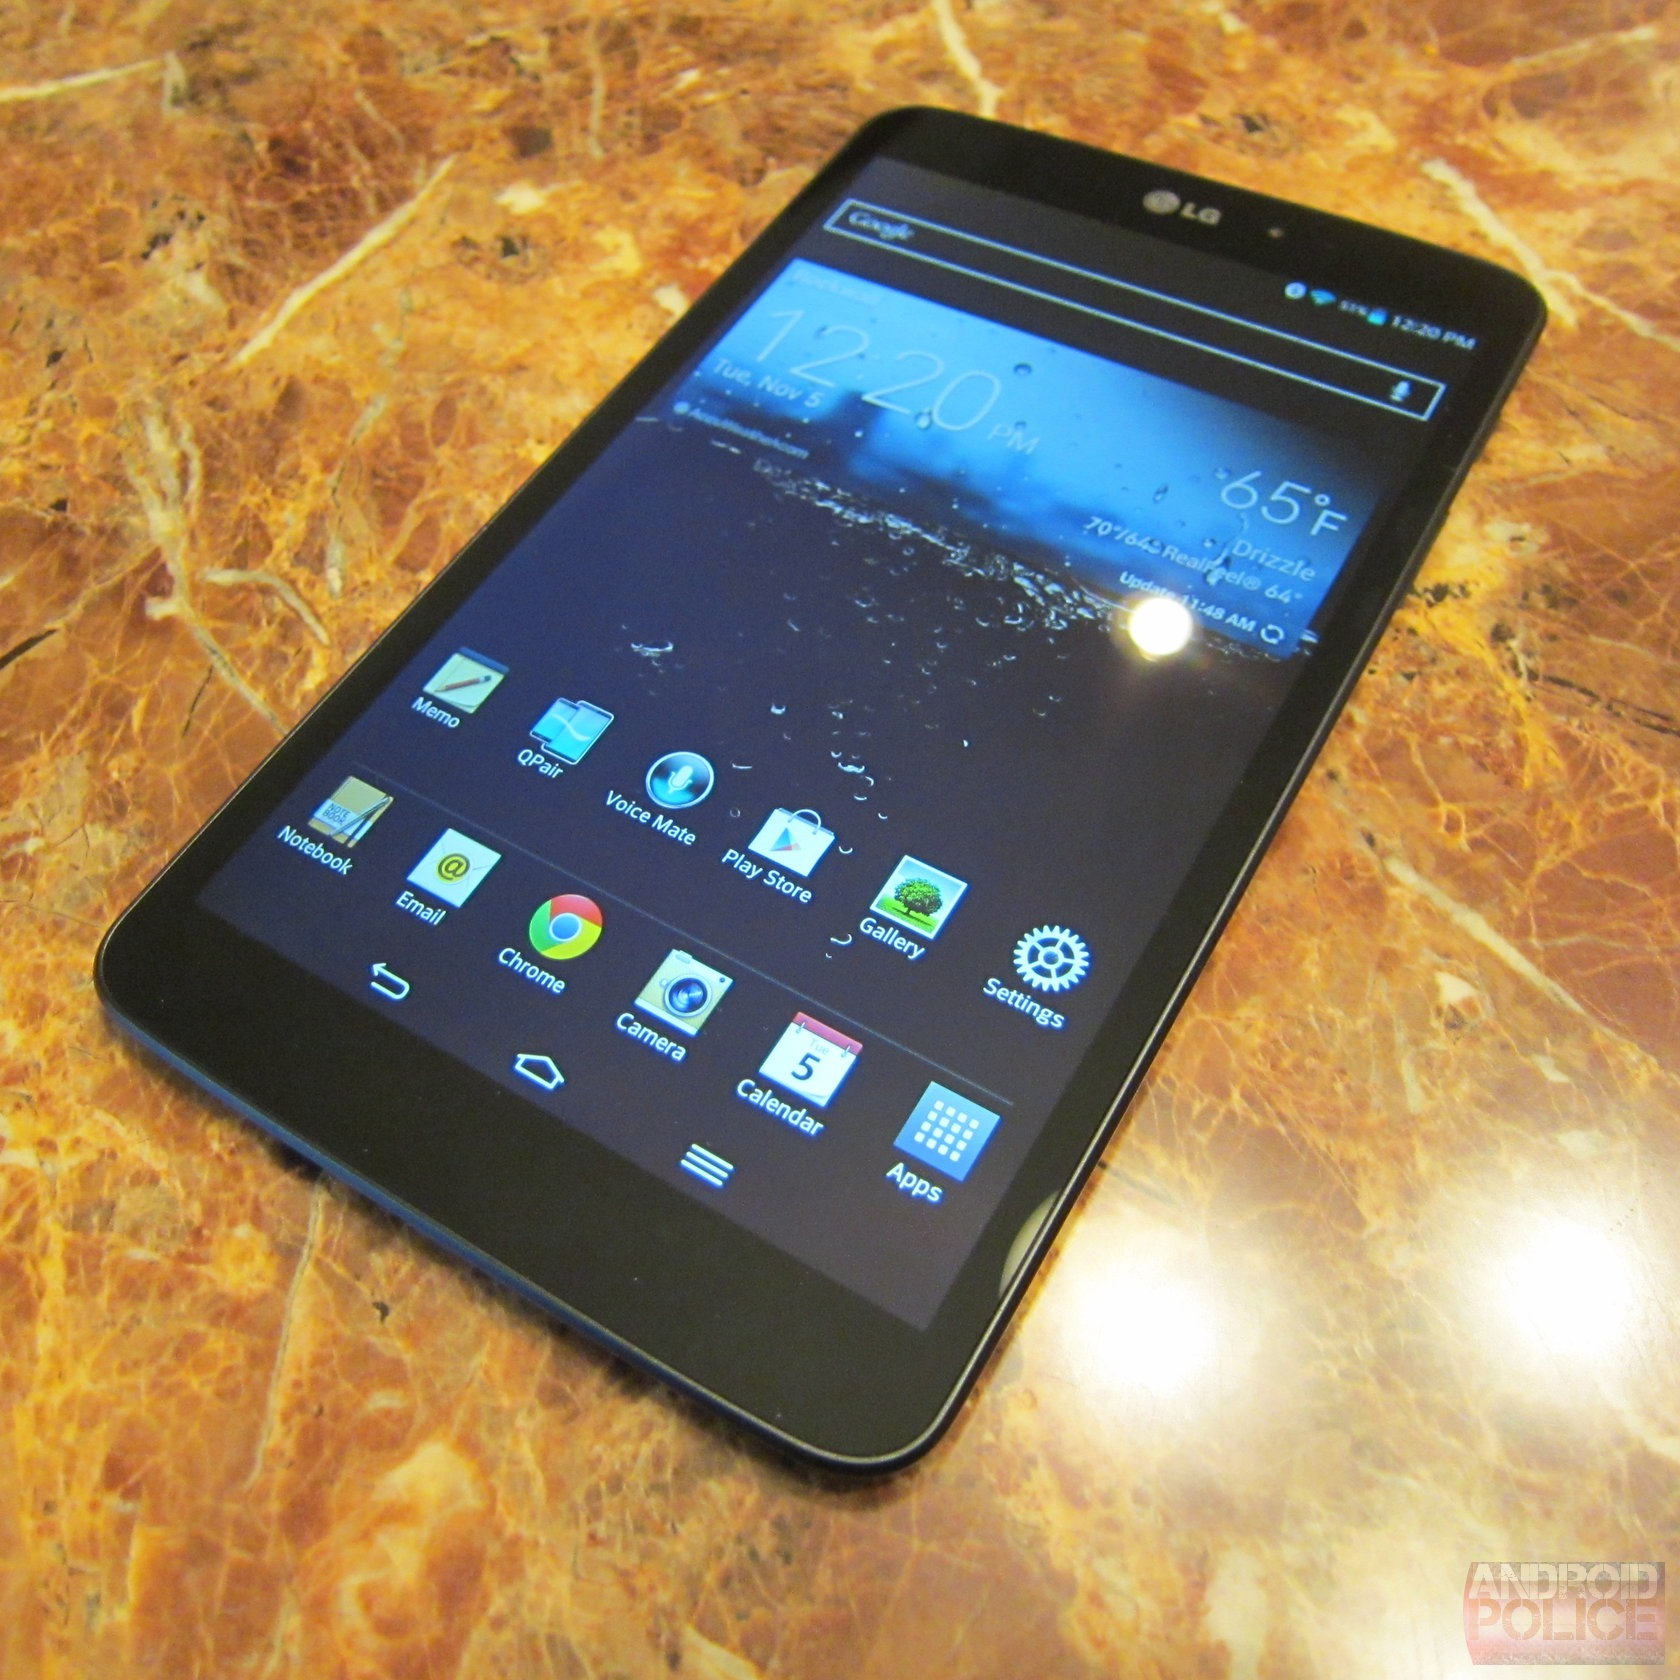 LG G Pad 8.3 Review: A Potentially Good Device That Gets Lost In The ...